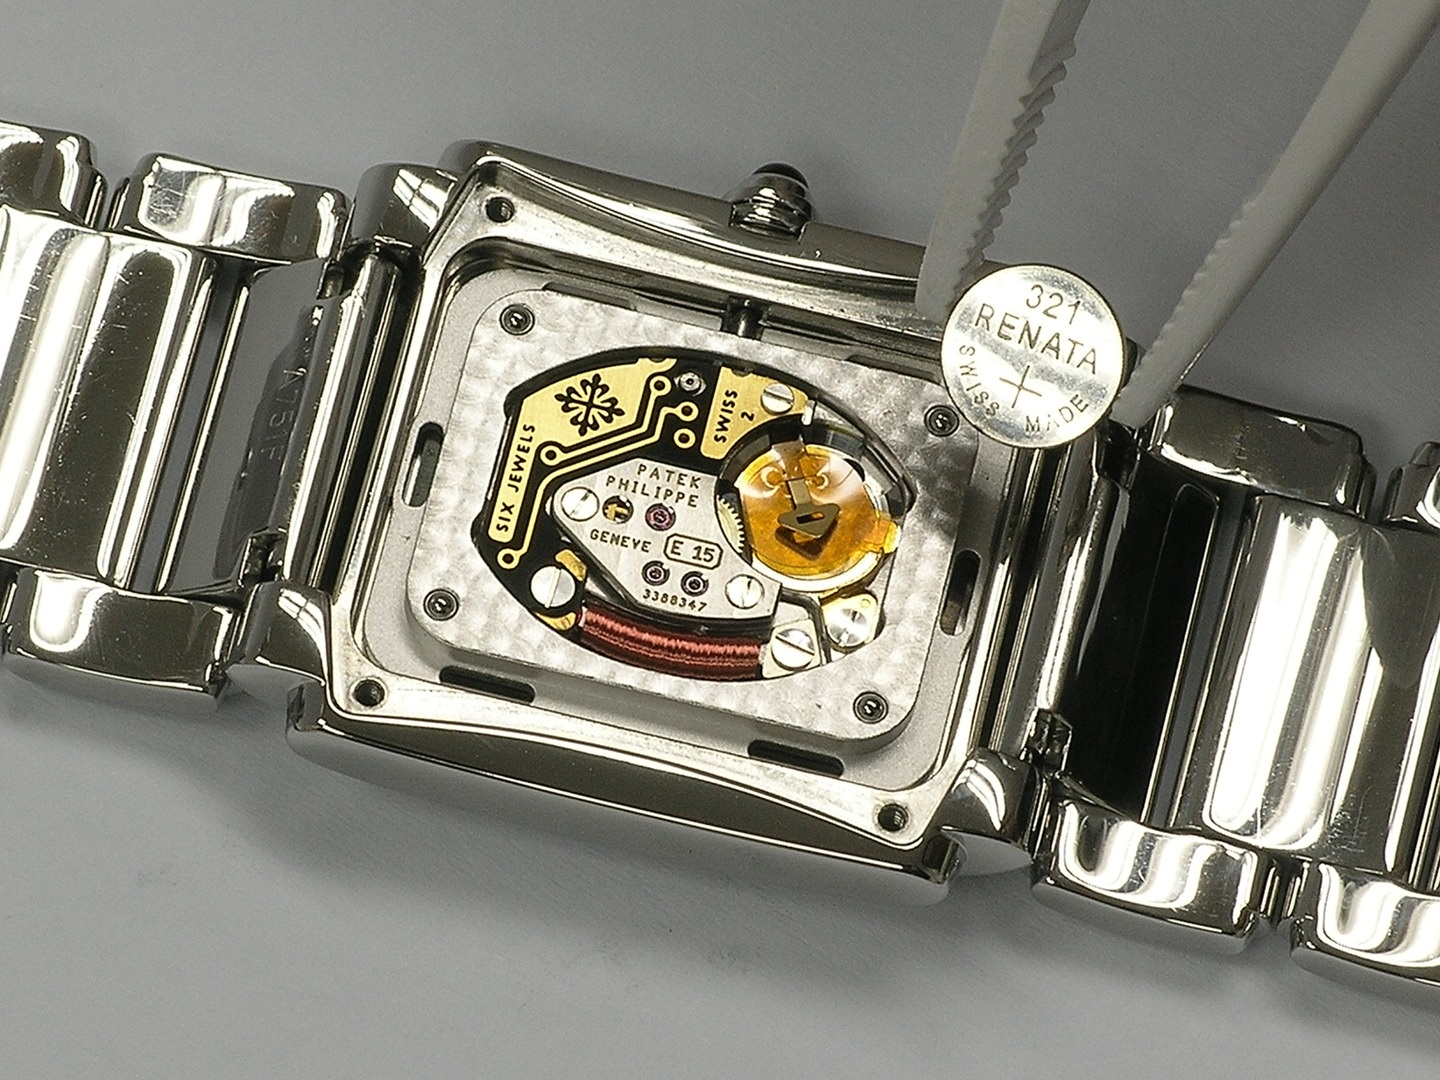 Thay pin đồng hồ Watchcare